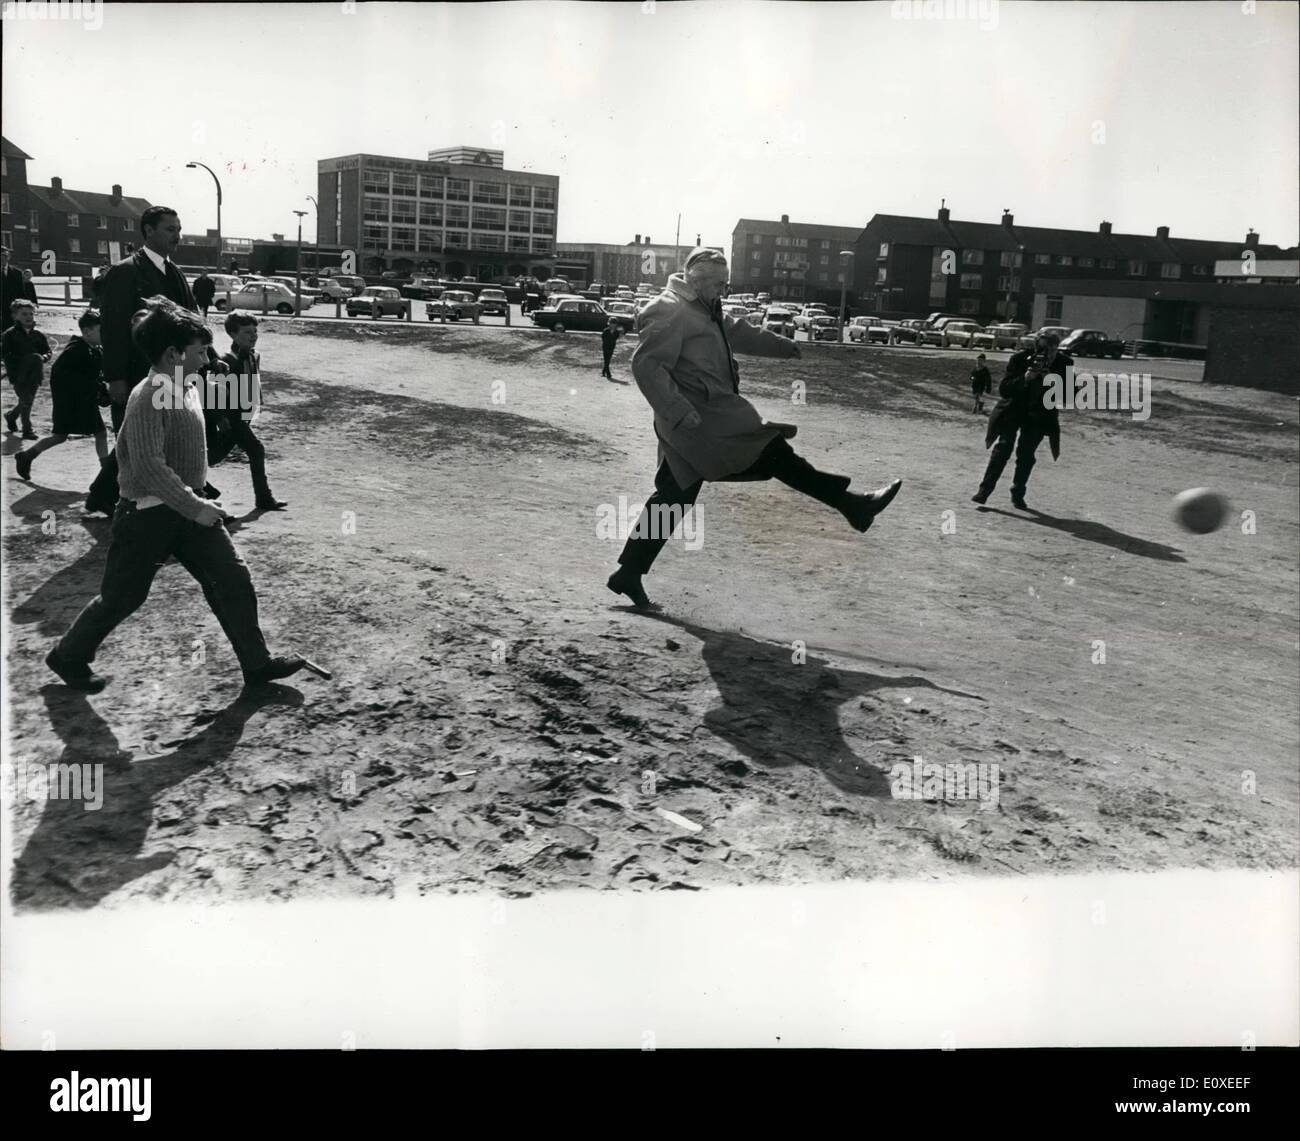 Harold young stock photos harold young stock images alamy jul 07 1966 mr harold wilson plays football with some young children ccuart Choice Image